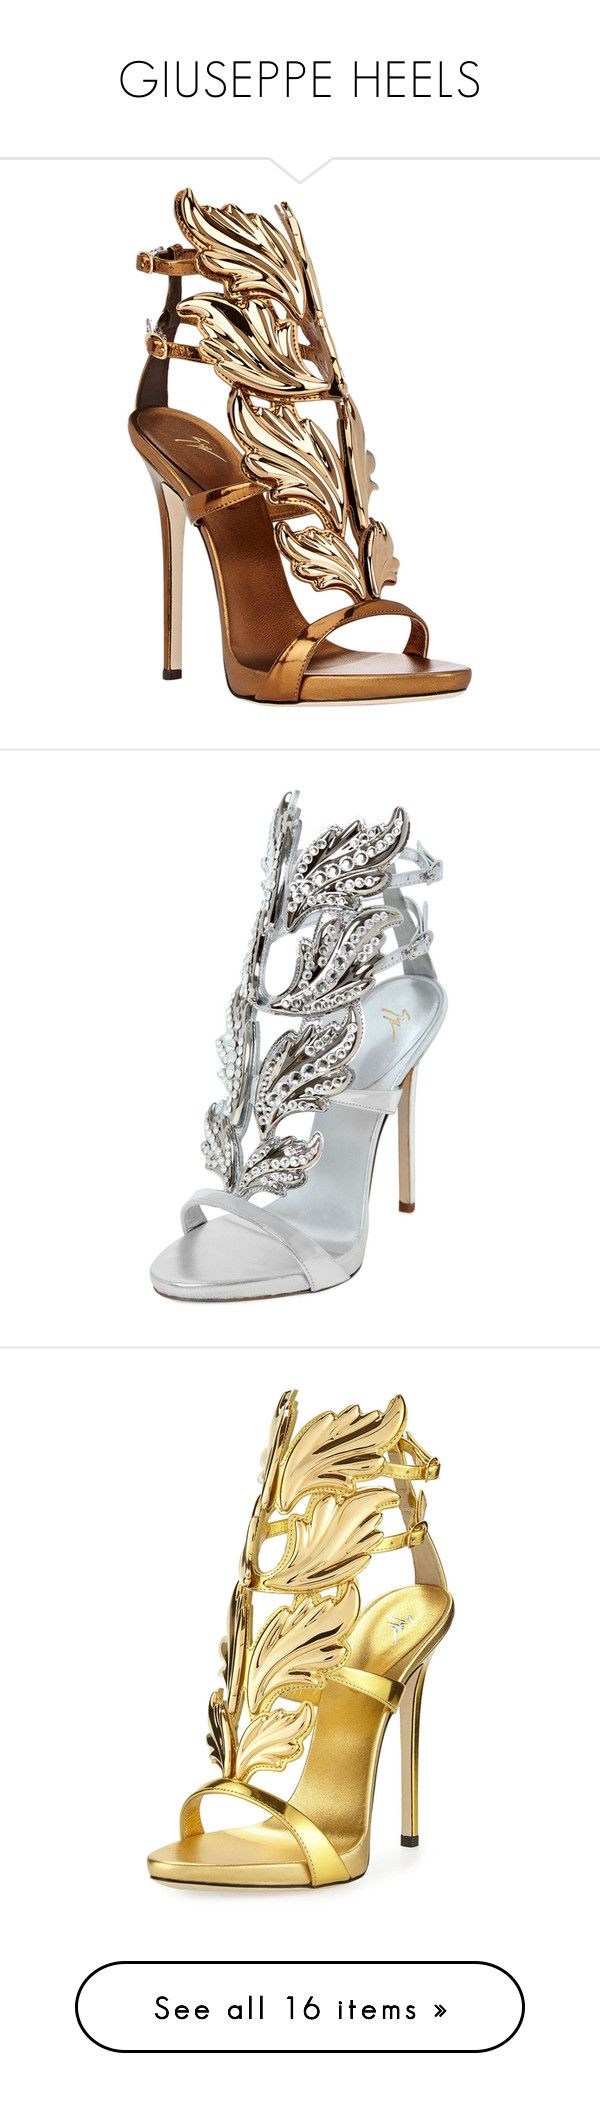 """""""GIUSEPPE HEELS"""" by saucinonyou999 ❤ liked on Polyvore featuring shoes, sandals, heels, giuseppe zanotti, gold, colorless, leather sandals, platform heel sandals, ankle strap sandals and leather sole shoes"""